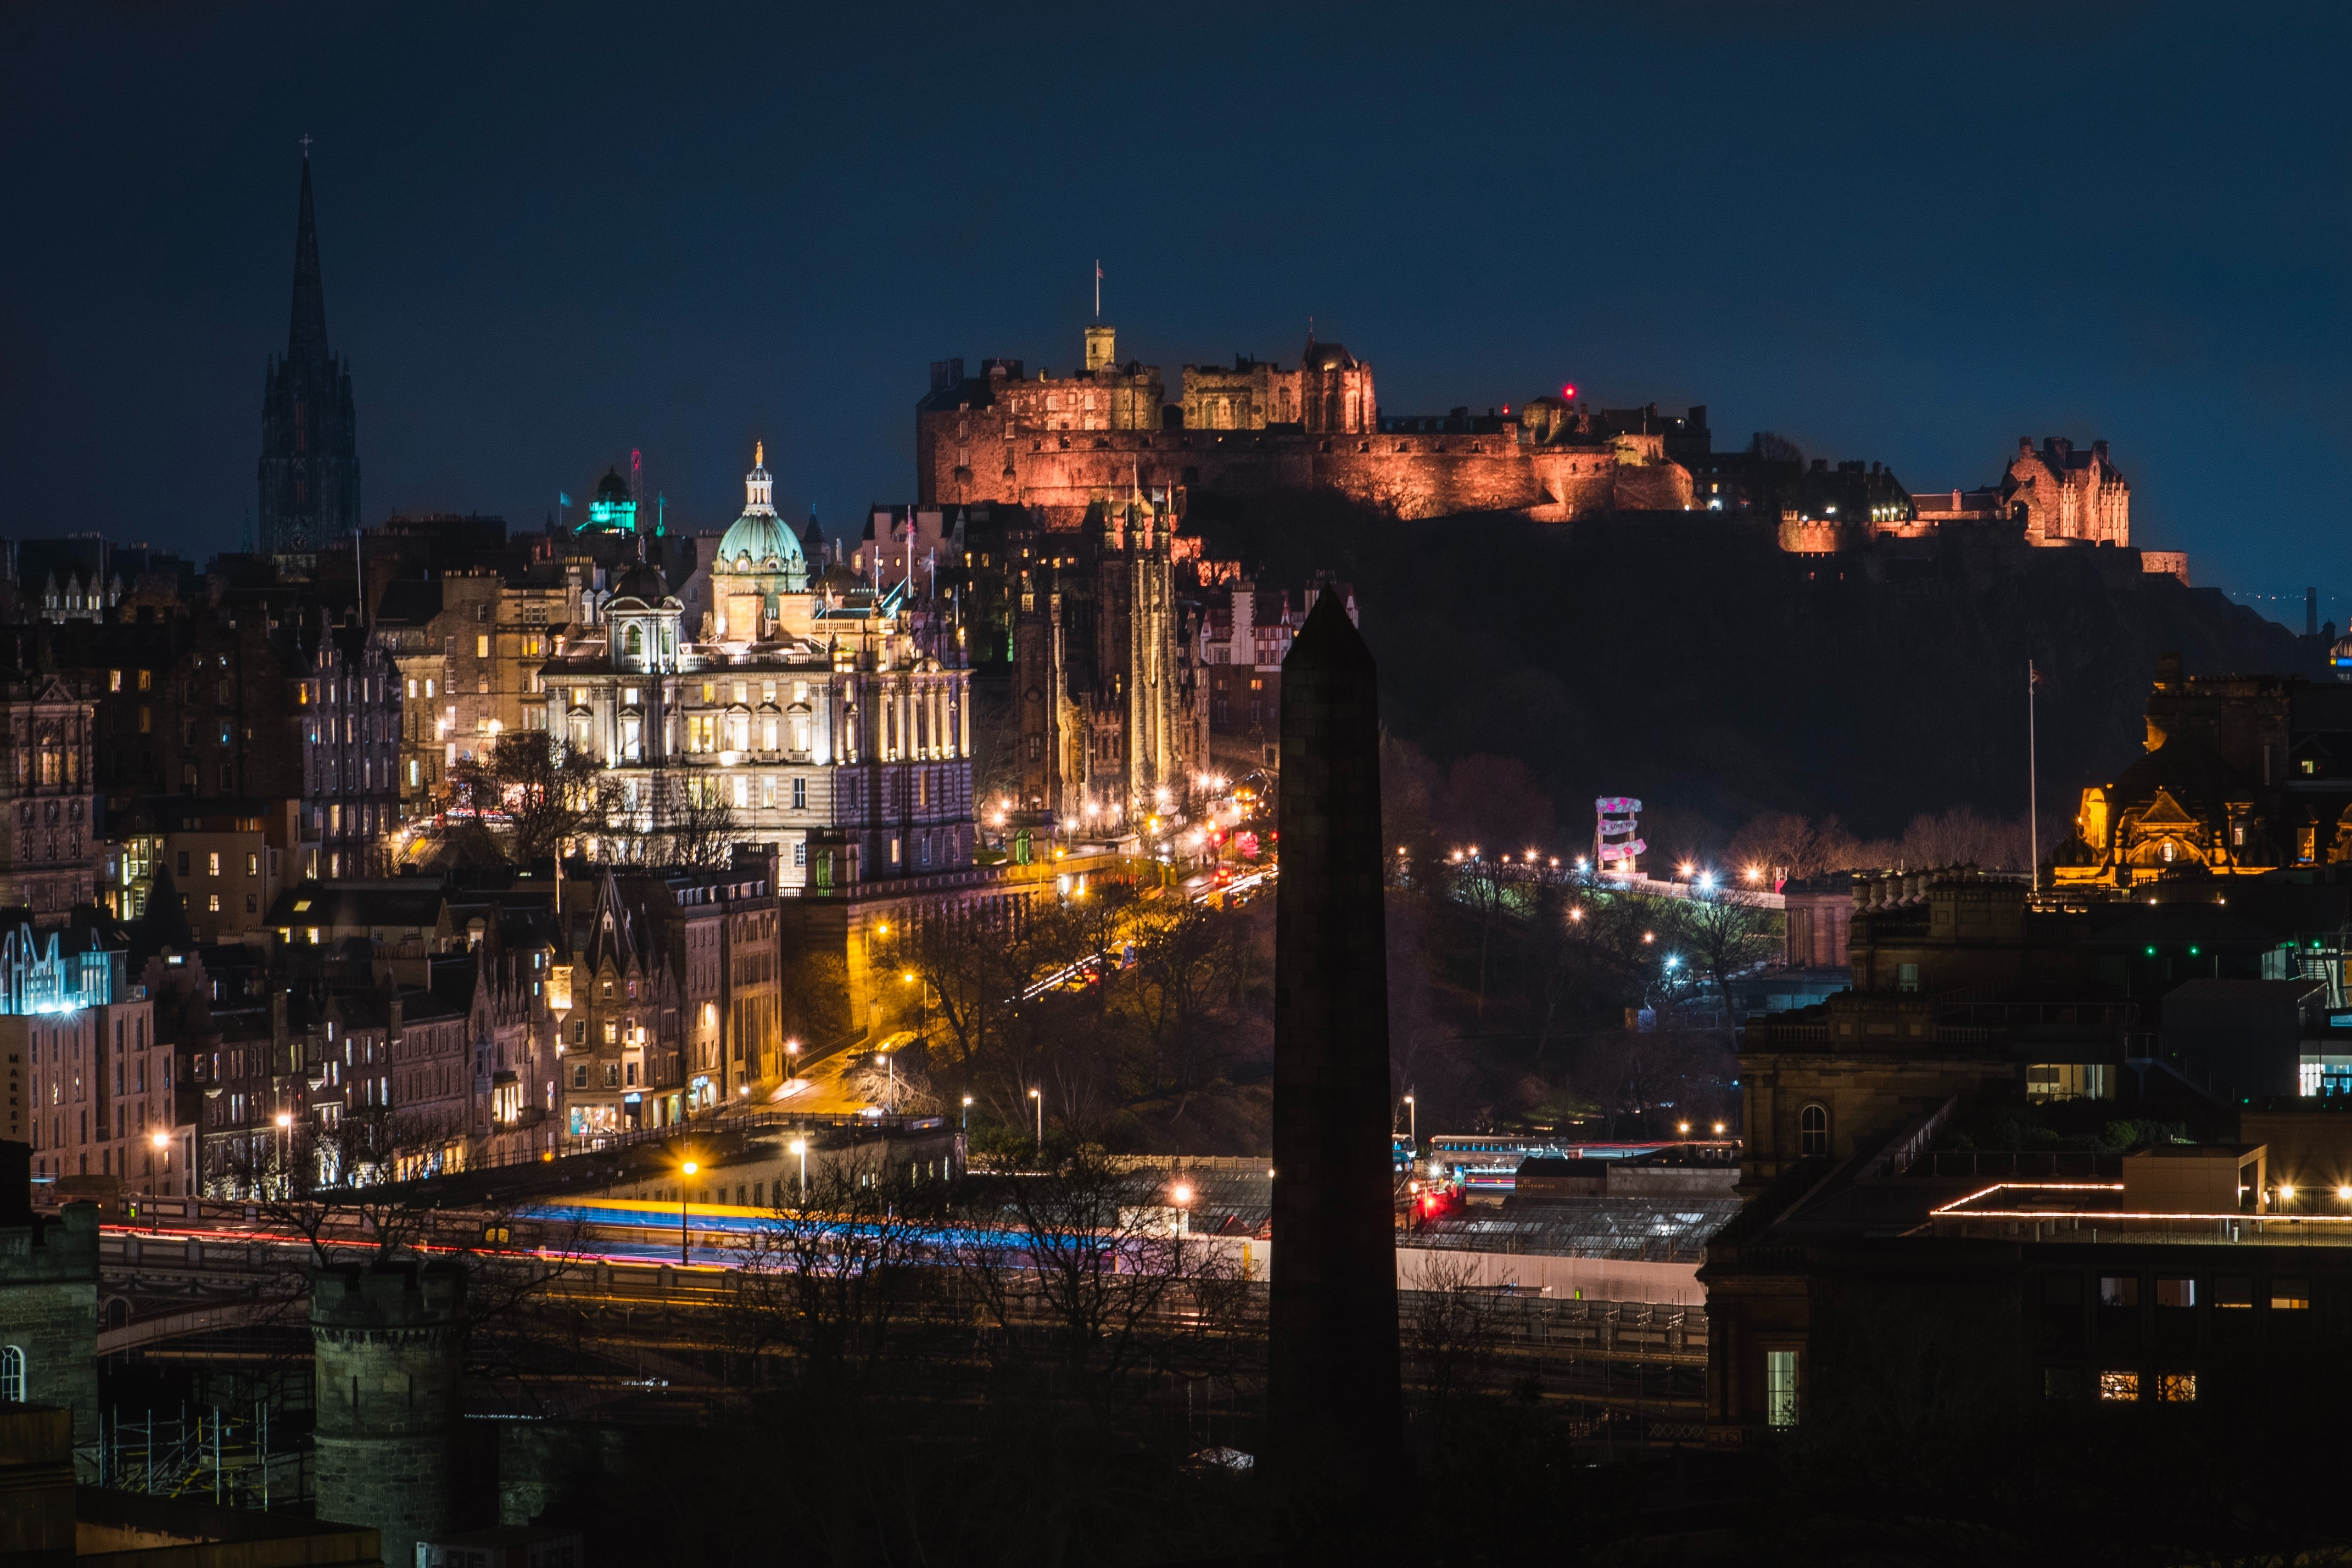 Scottish events businesses disappointed by lack of detail in Sturgeon's roadmap - Access All Areas